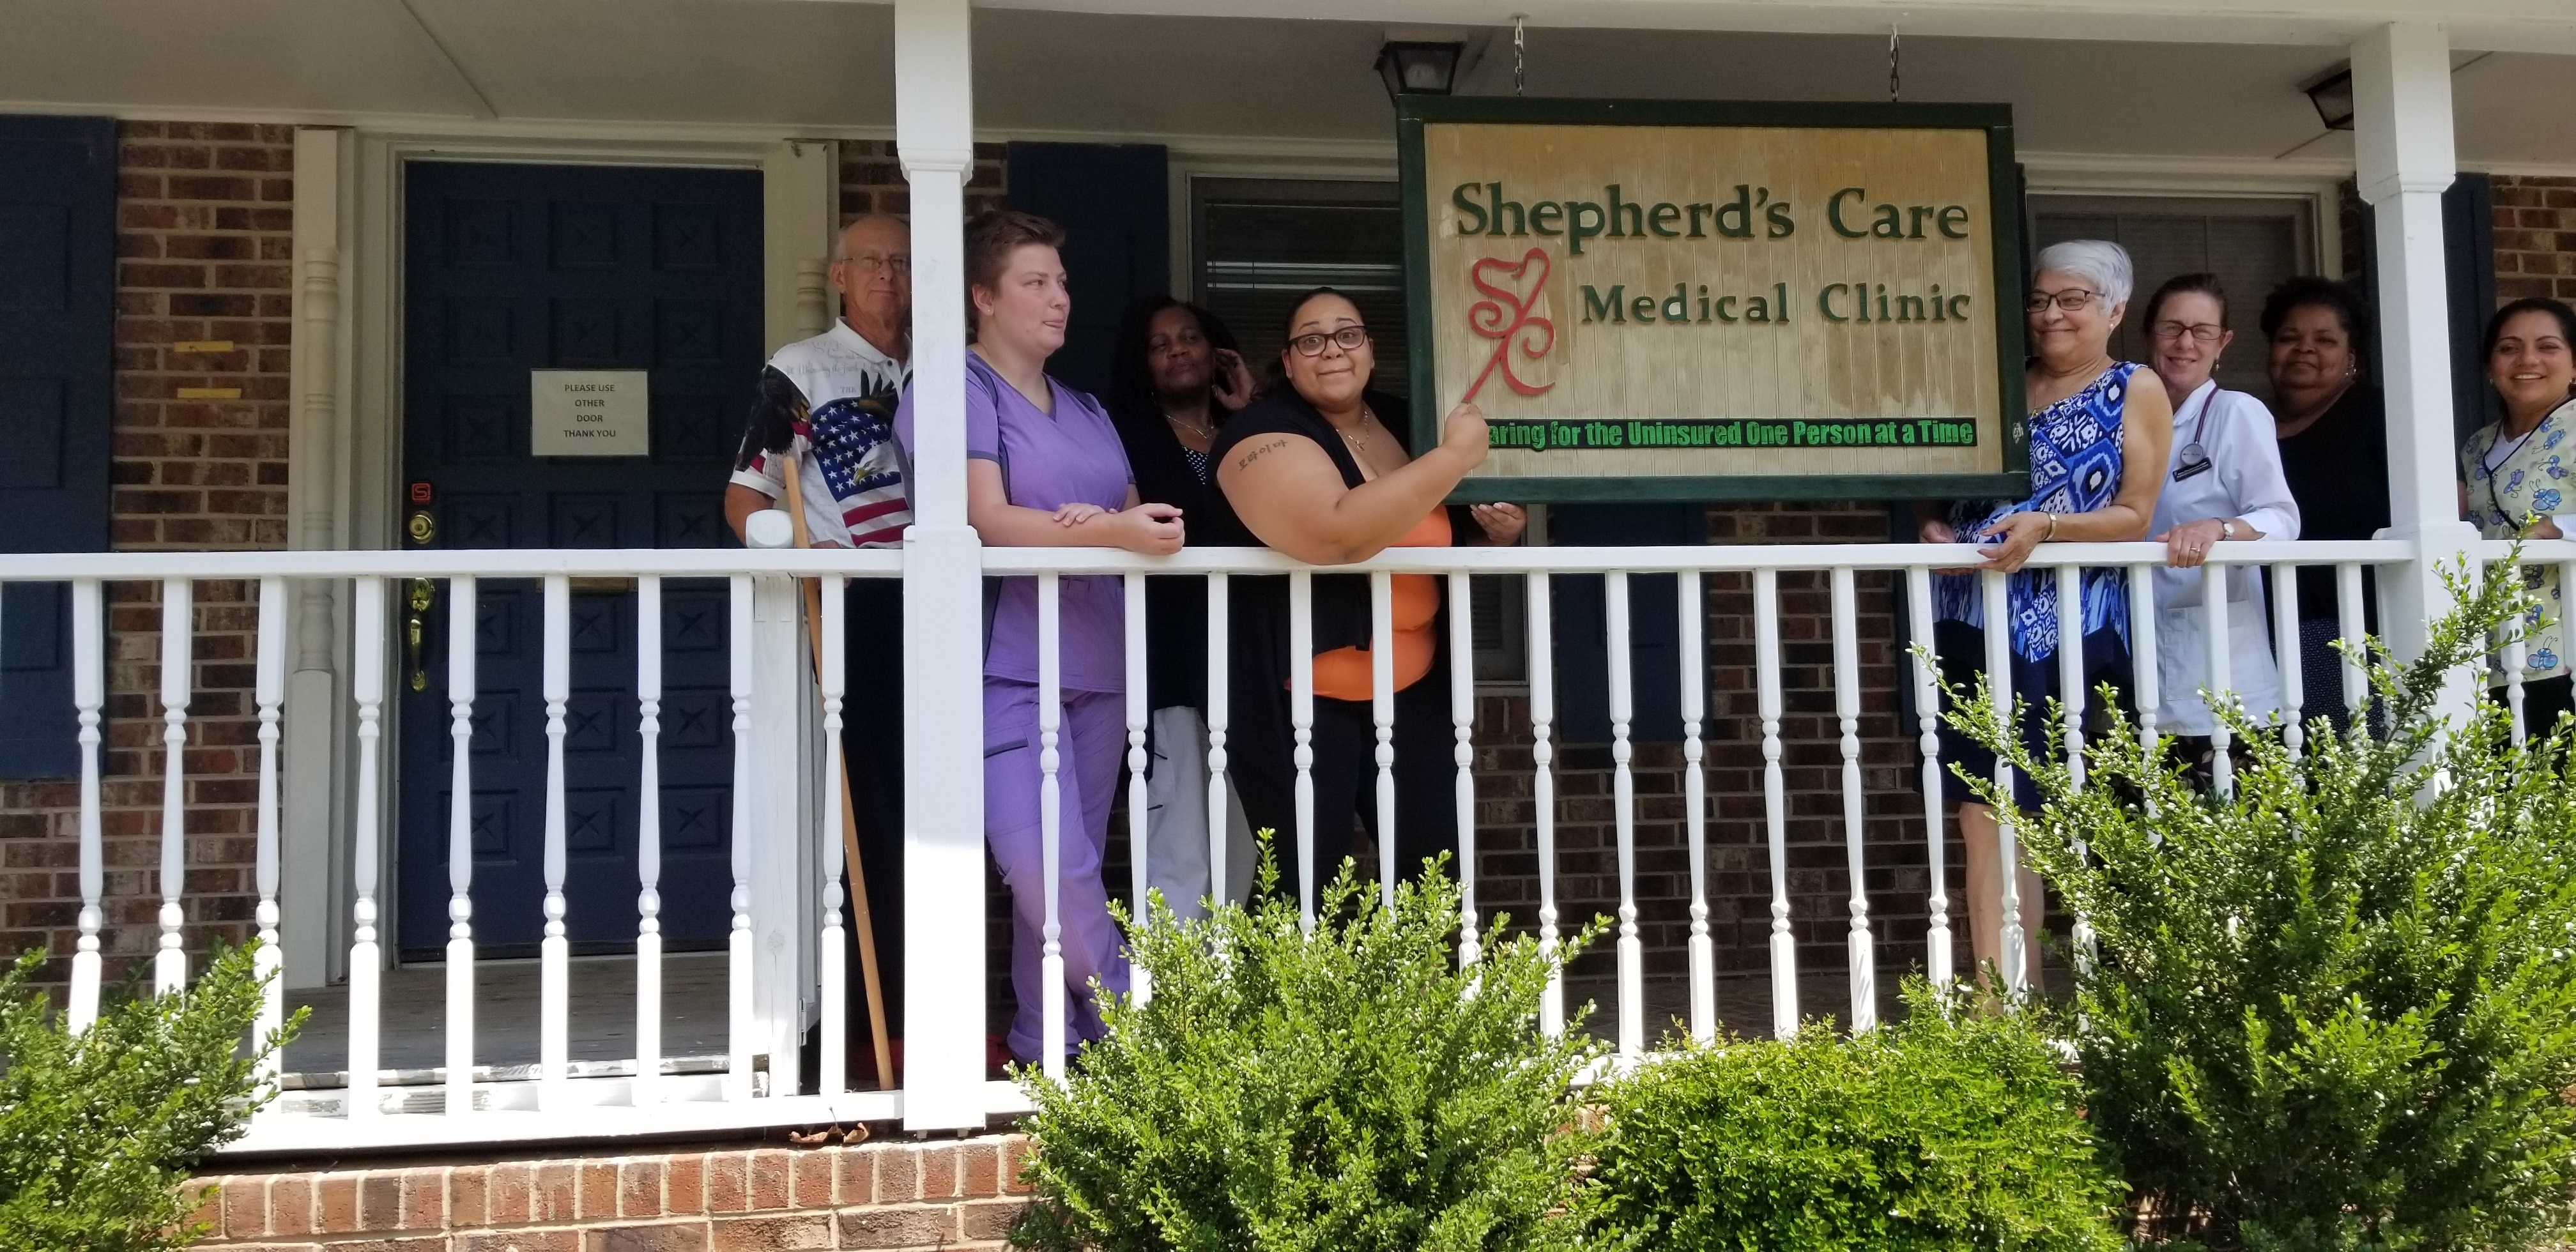 Employees standing in front of Shepherd's Care Medical Clinic